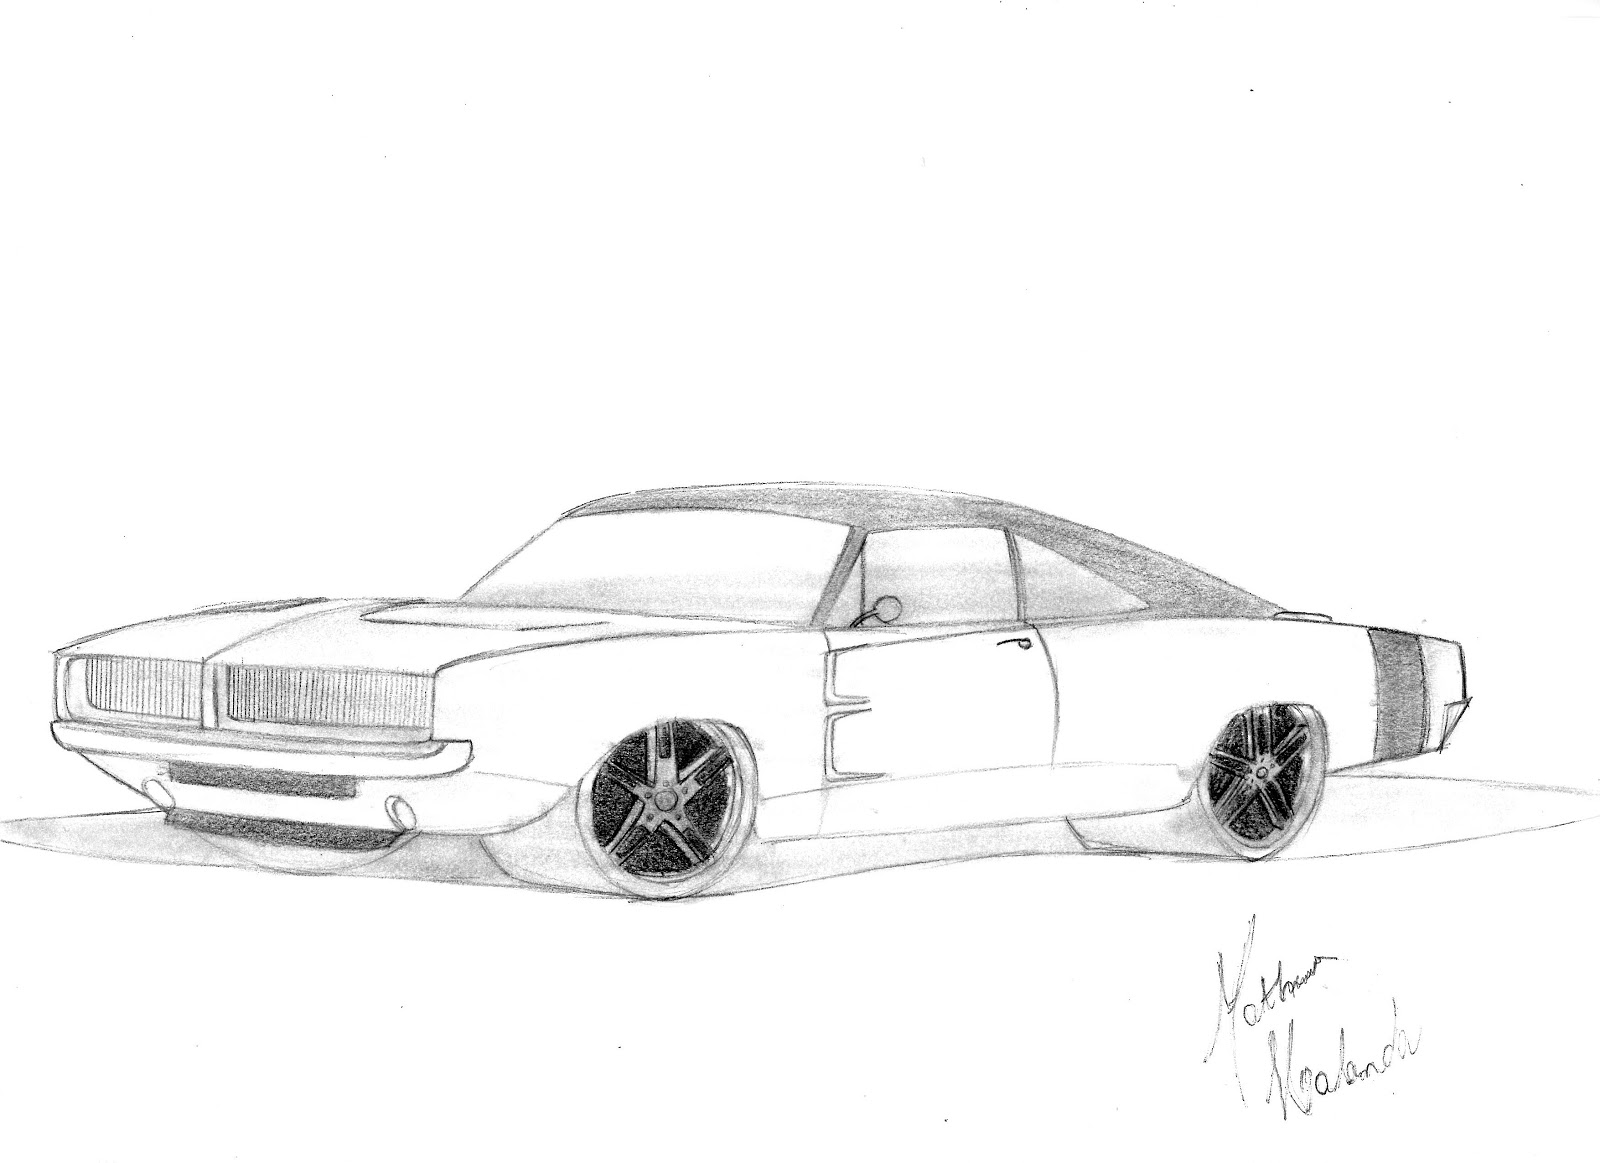 Mh Customs Designs Dodge Charger